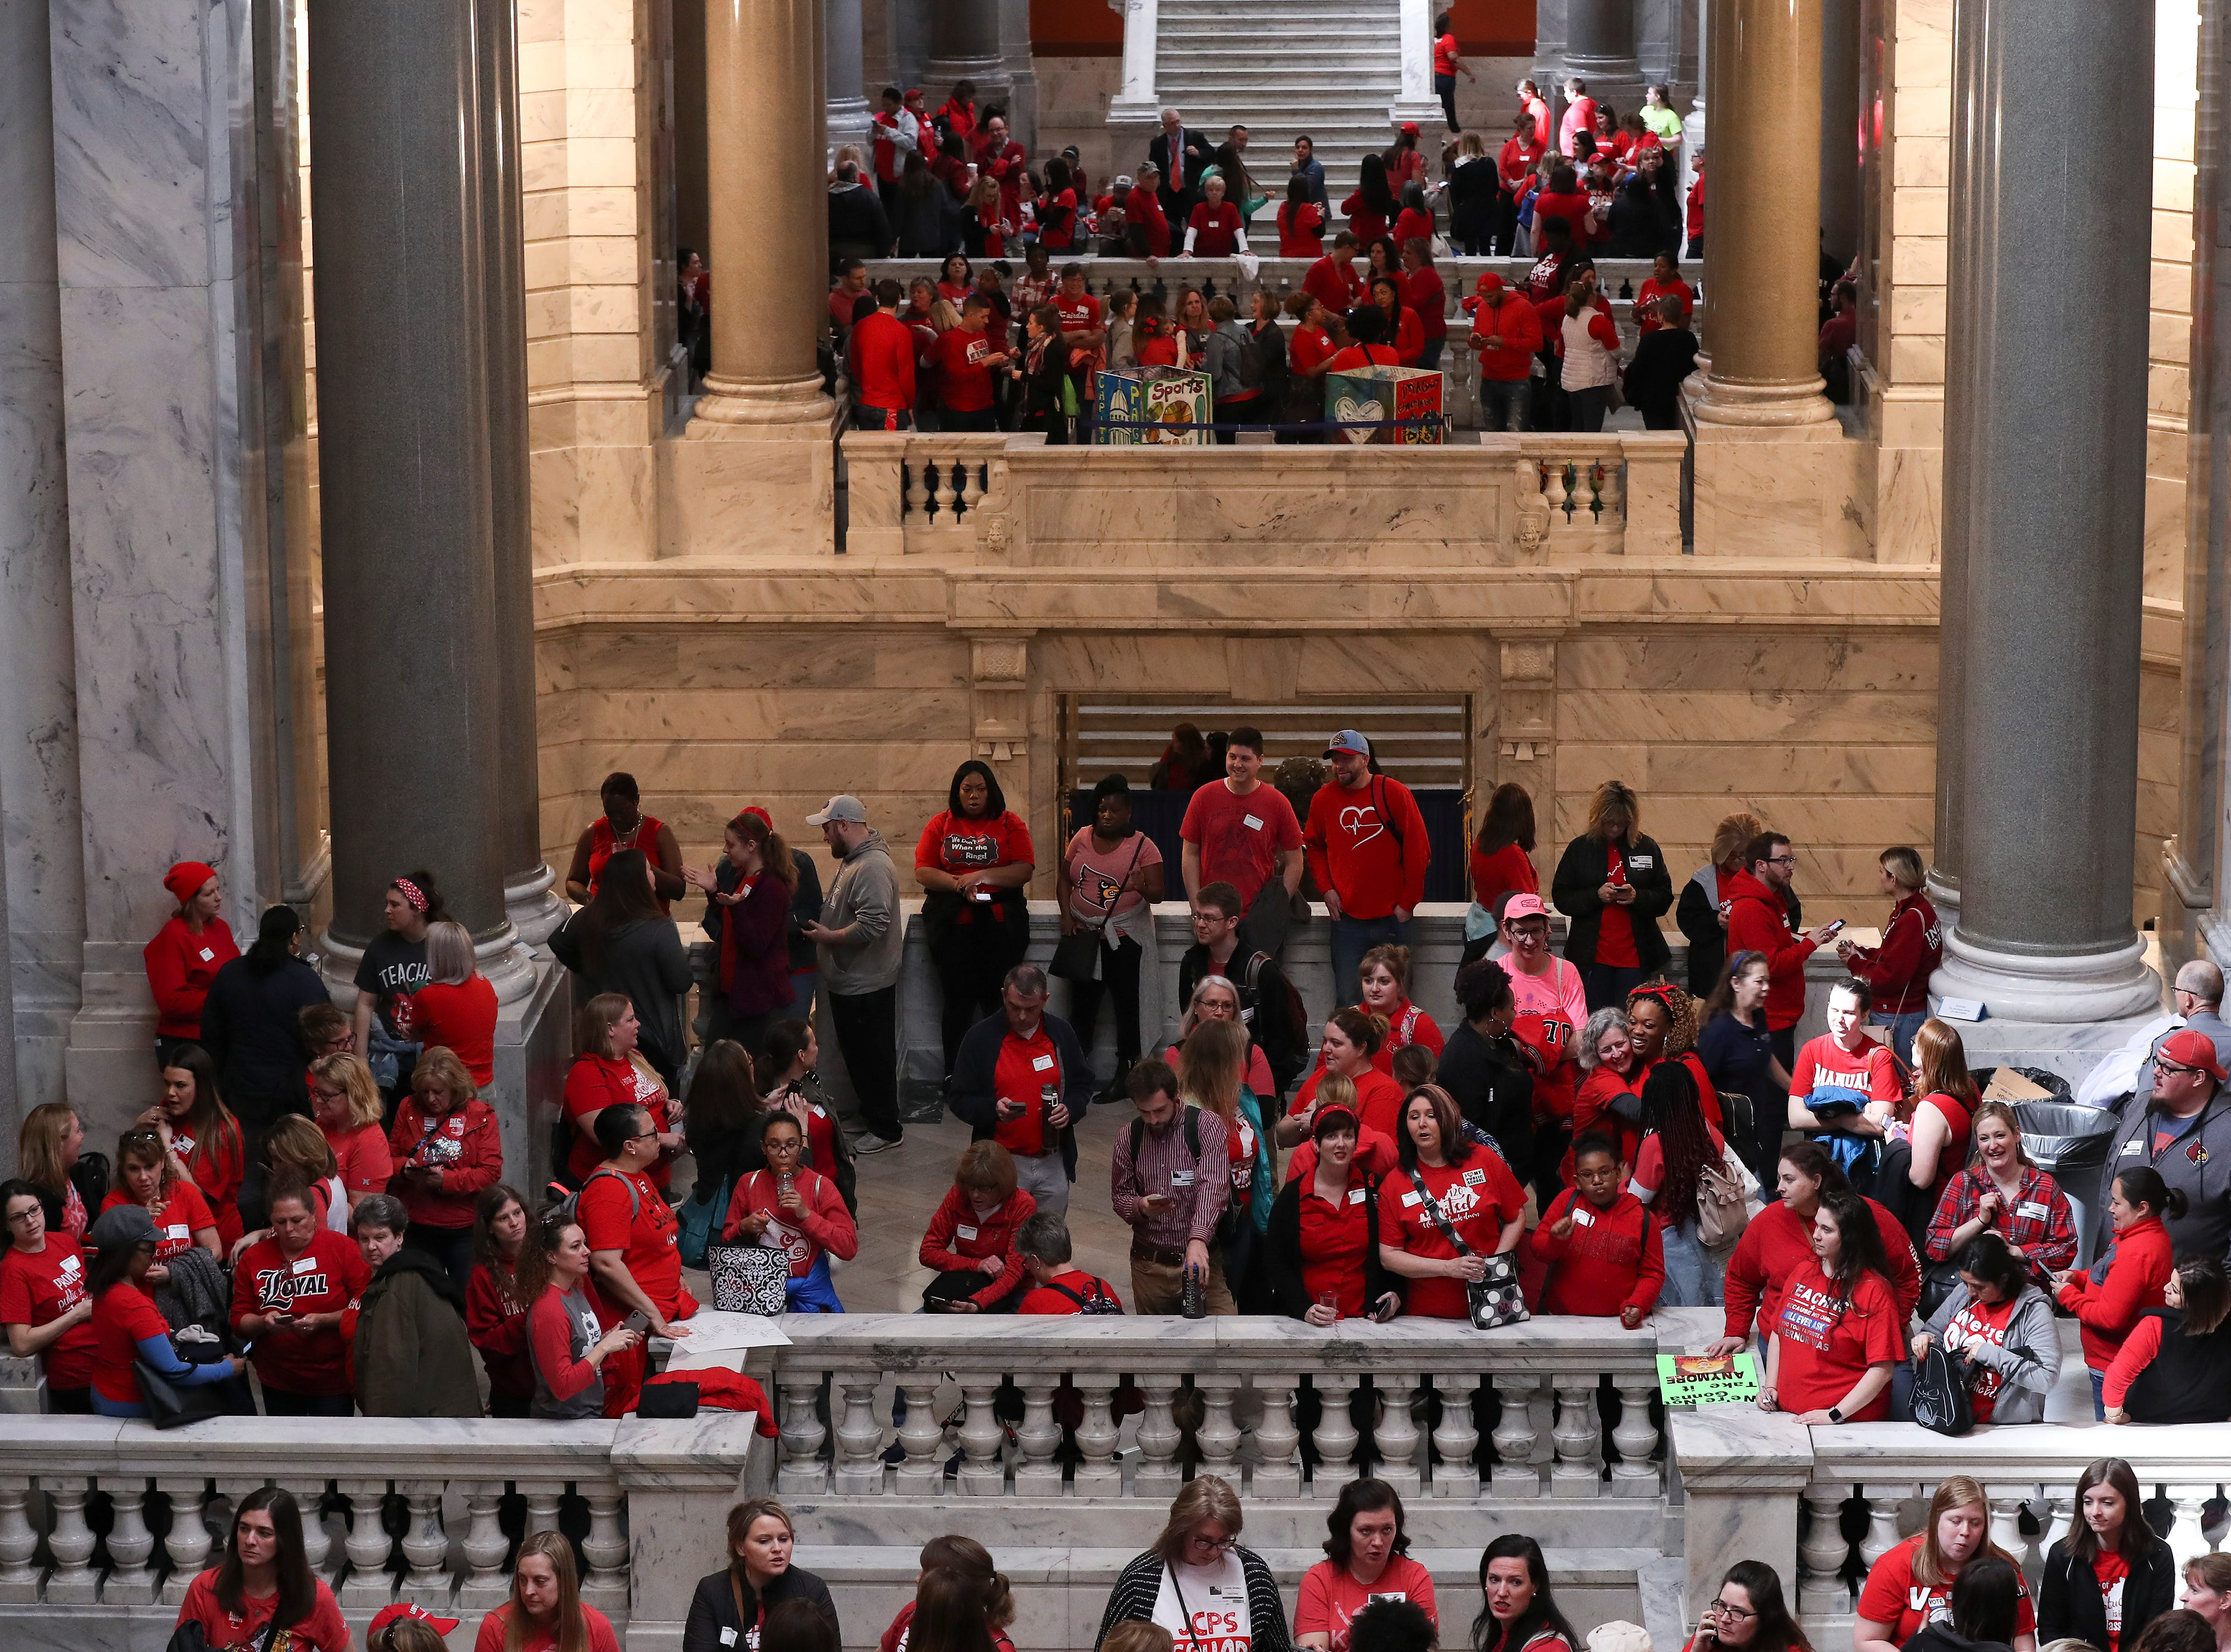 Teachers and students protested a number of bills under consideration that they believe will harm education in the state and reduce pensions in Frankfort. March 13, 2019